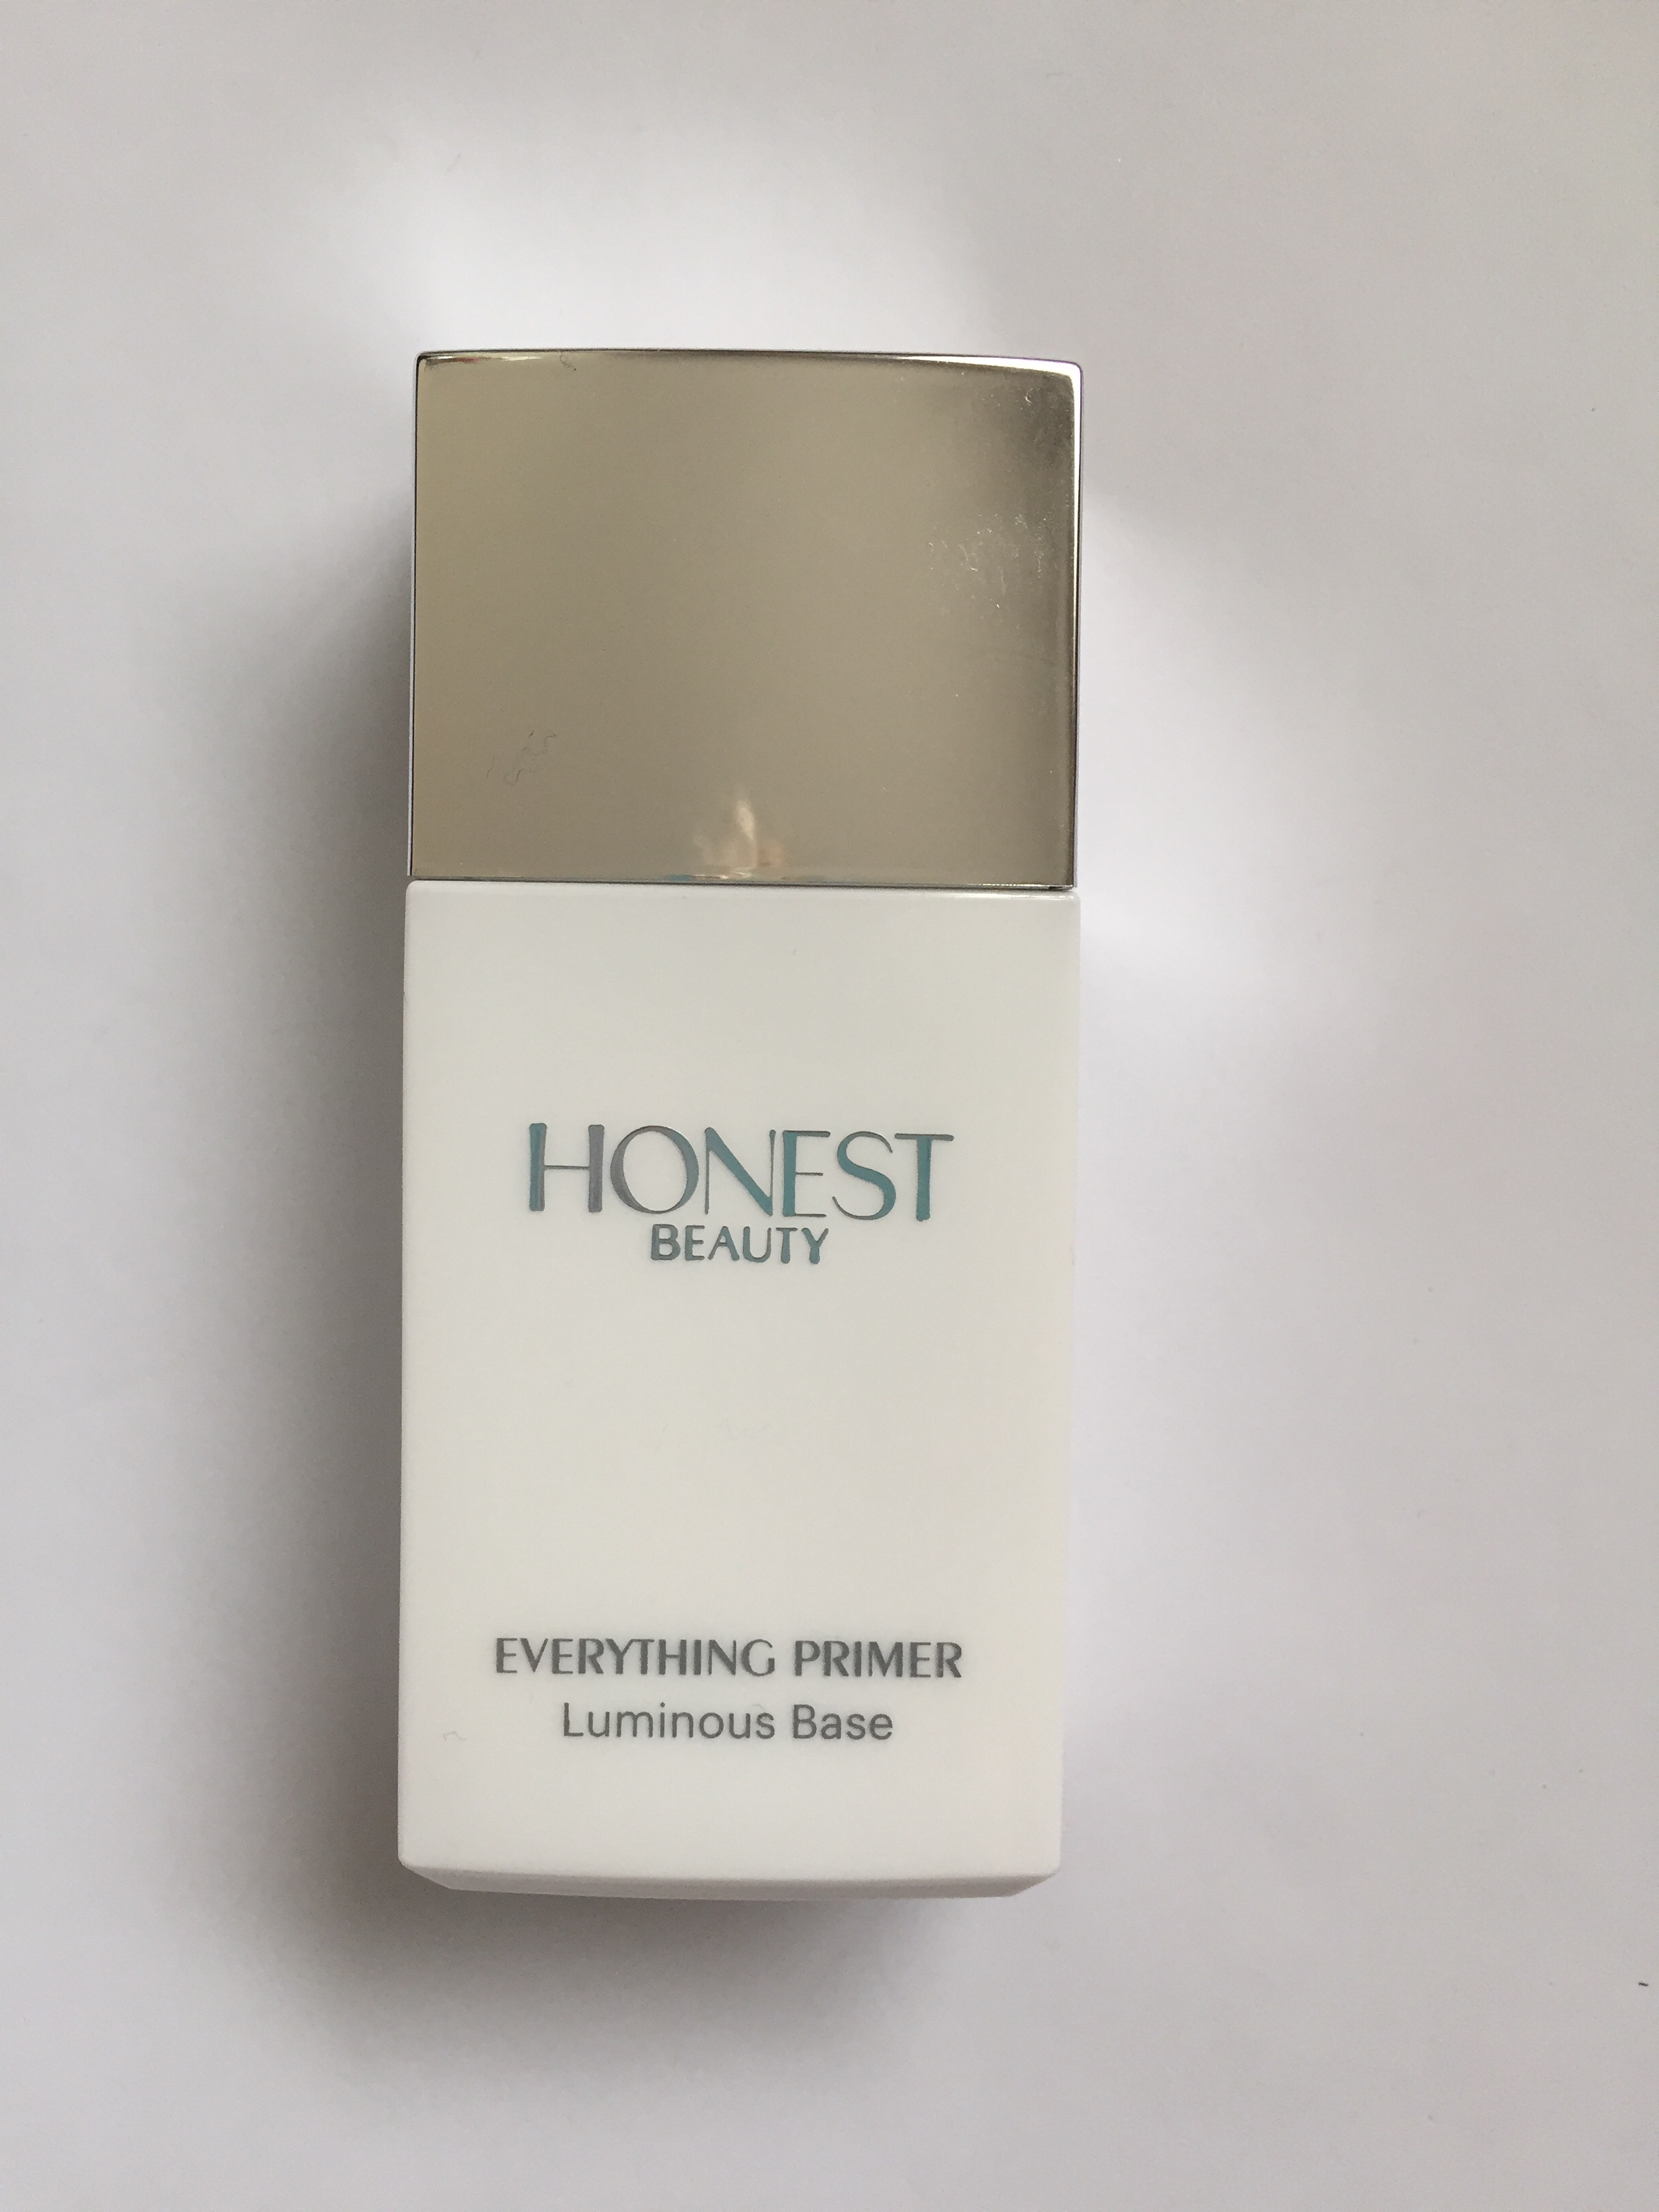 New: Honest Beauty Everything Primer Luminous Base